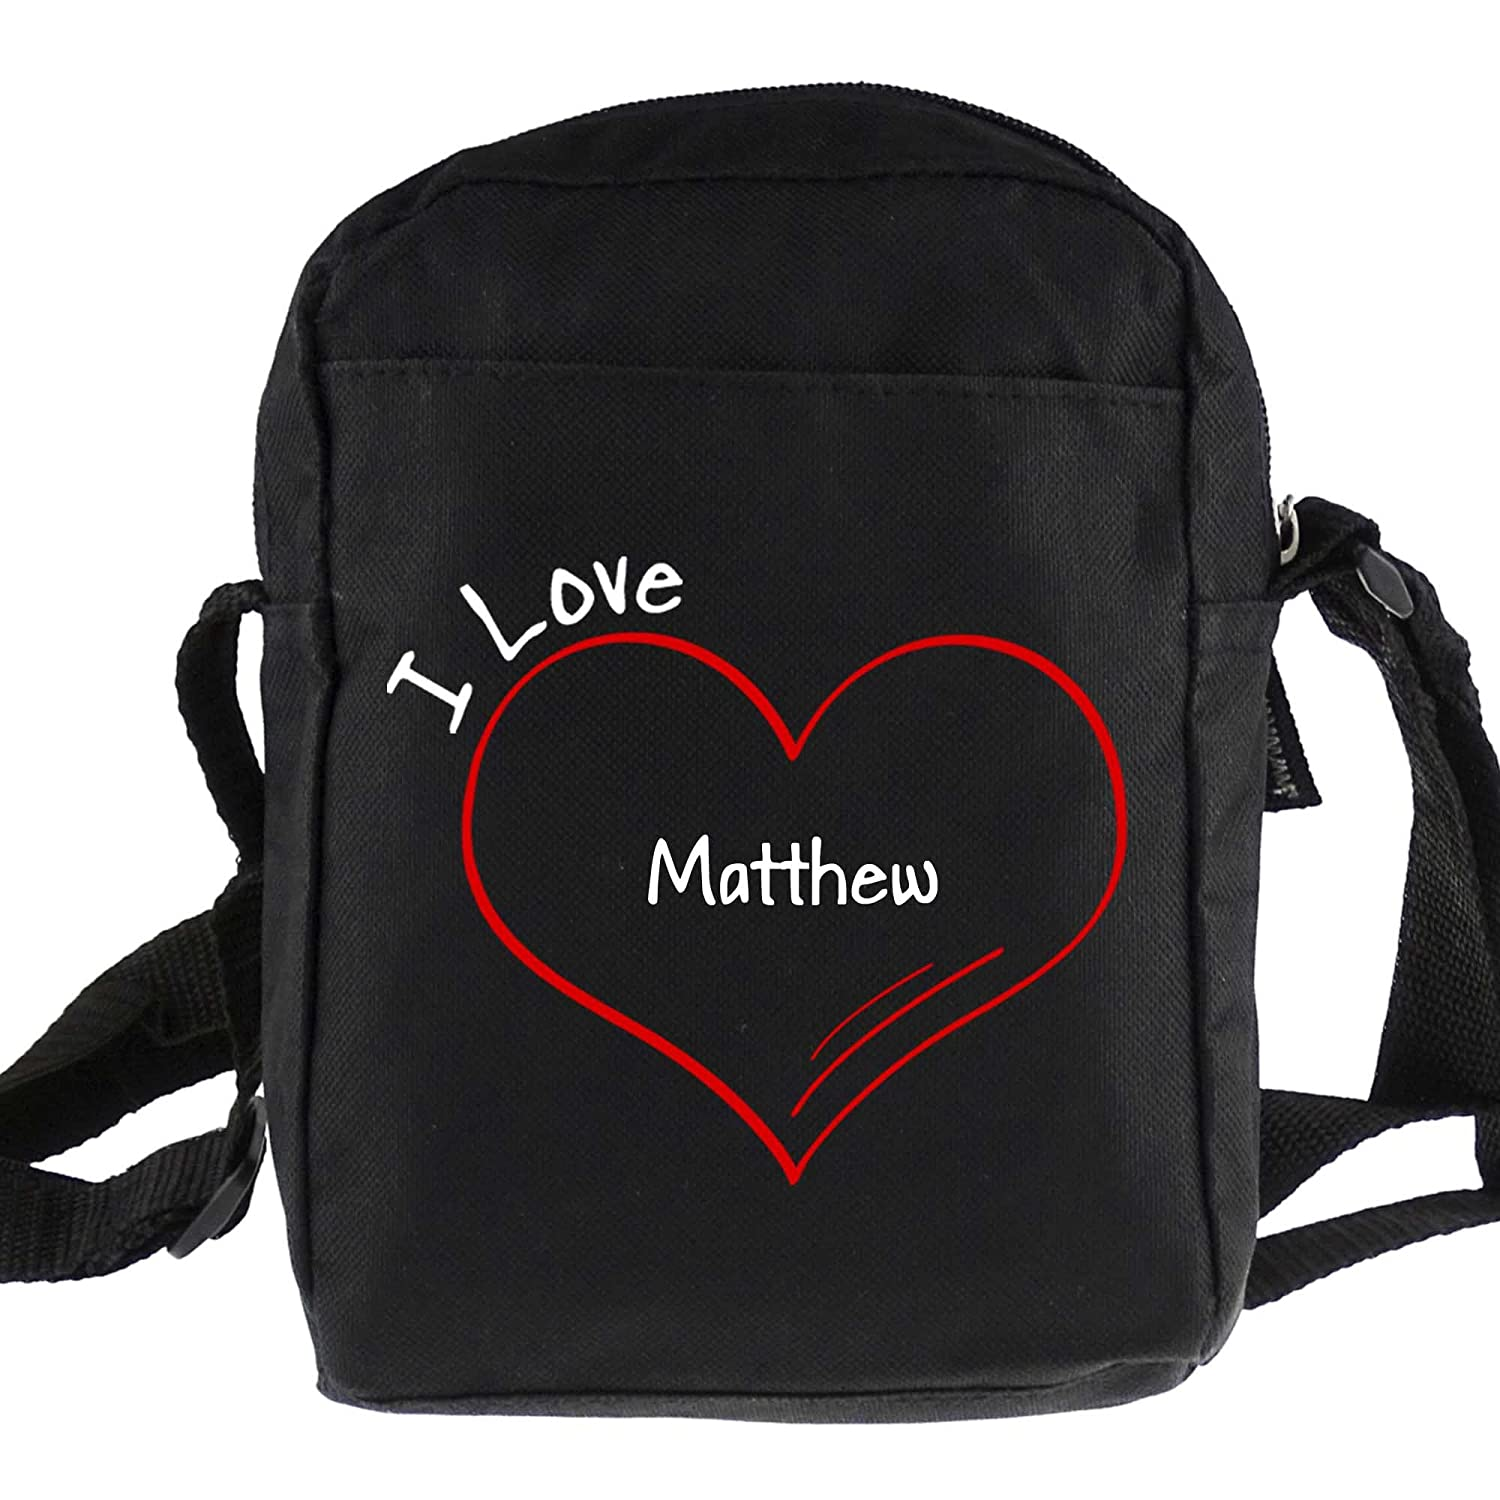 Modern I Love Matthew Shoulder Bag Black